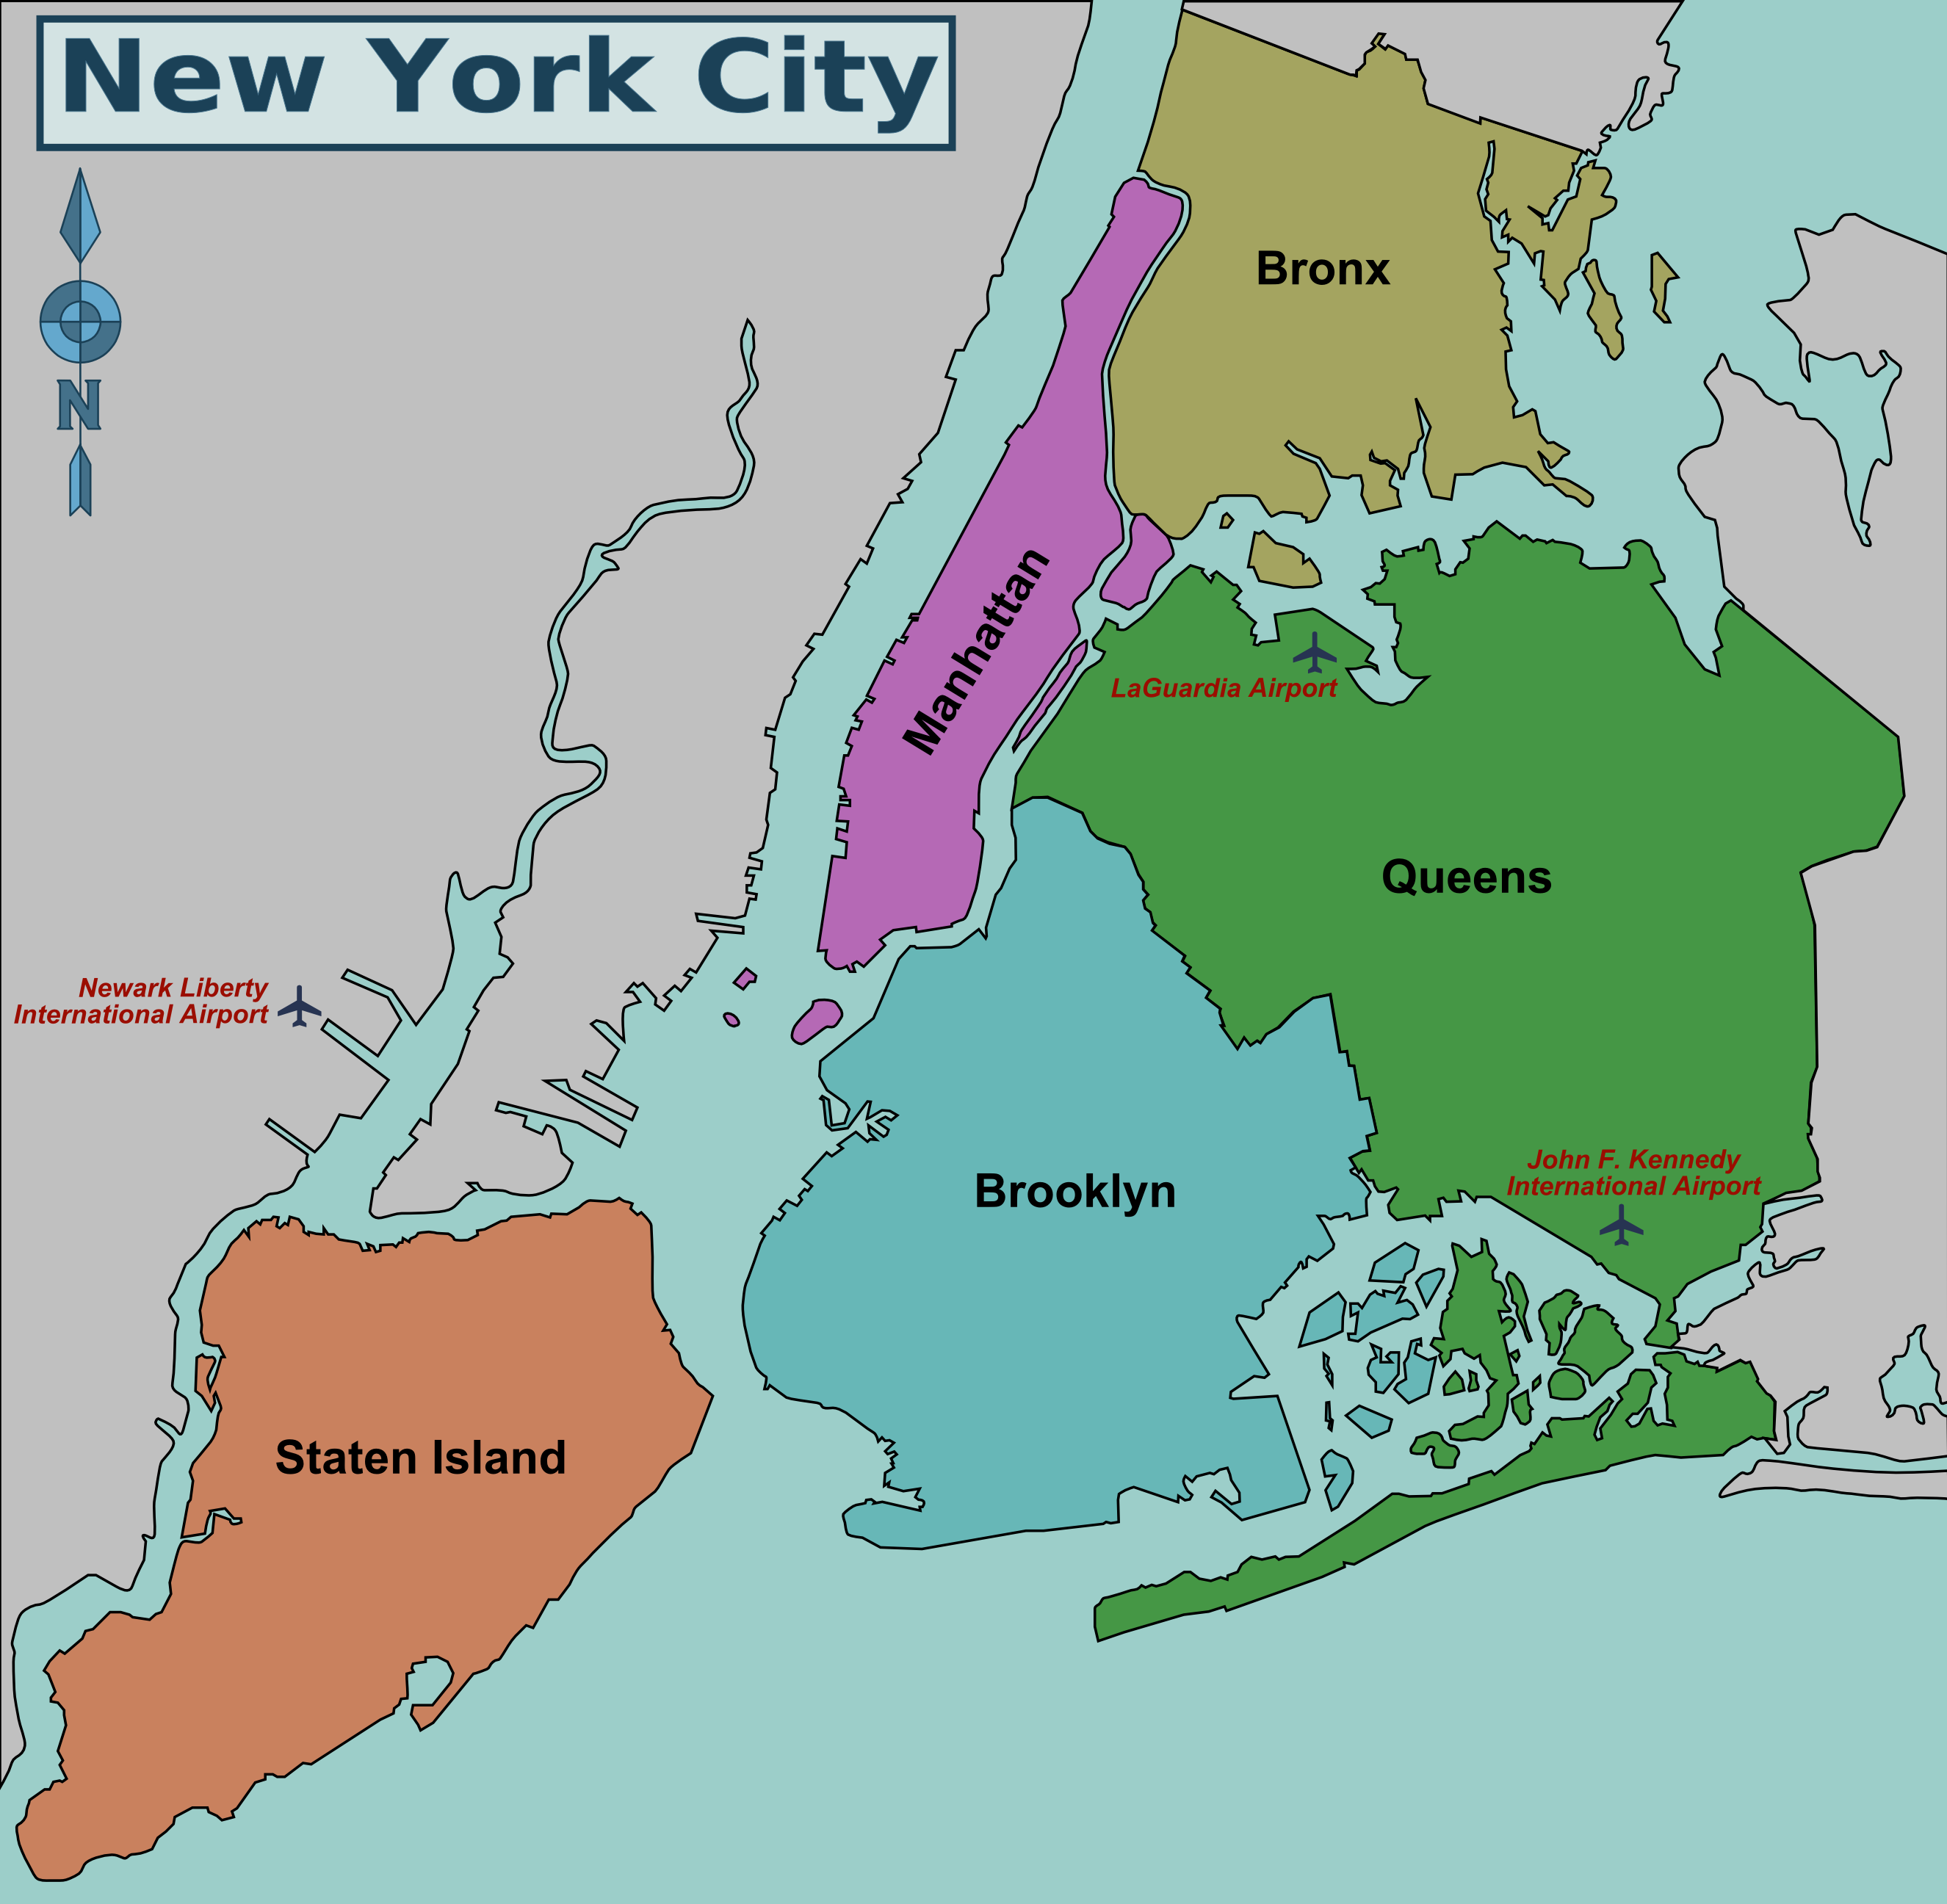 New York City Maps